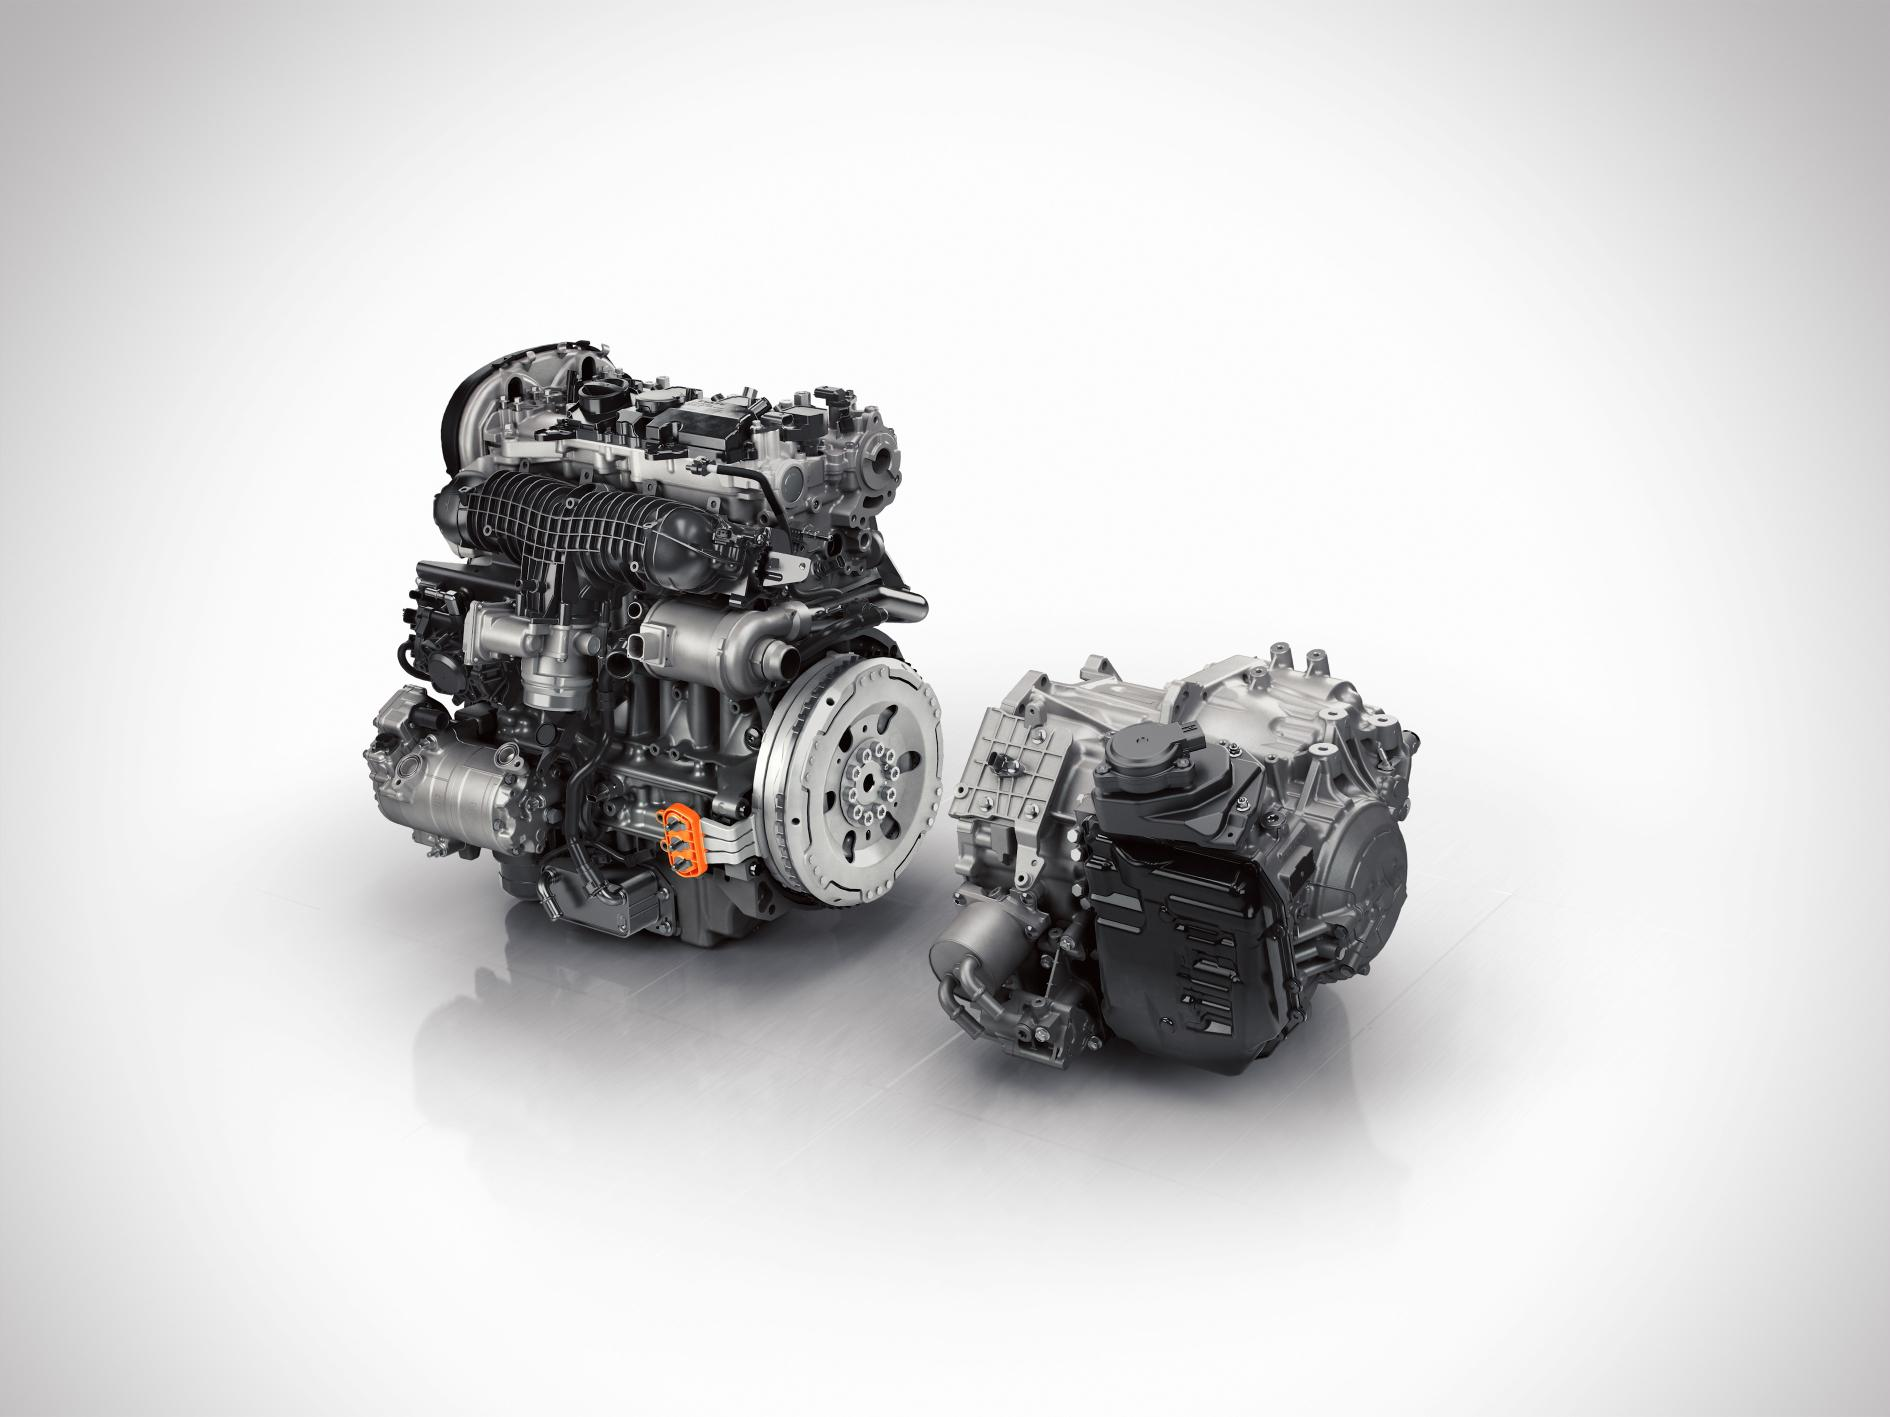 Volvo Xc90 Twin Engine Tech Plug In Electric Turbocharged And Supercharged